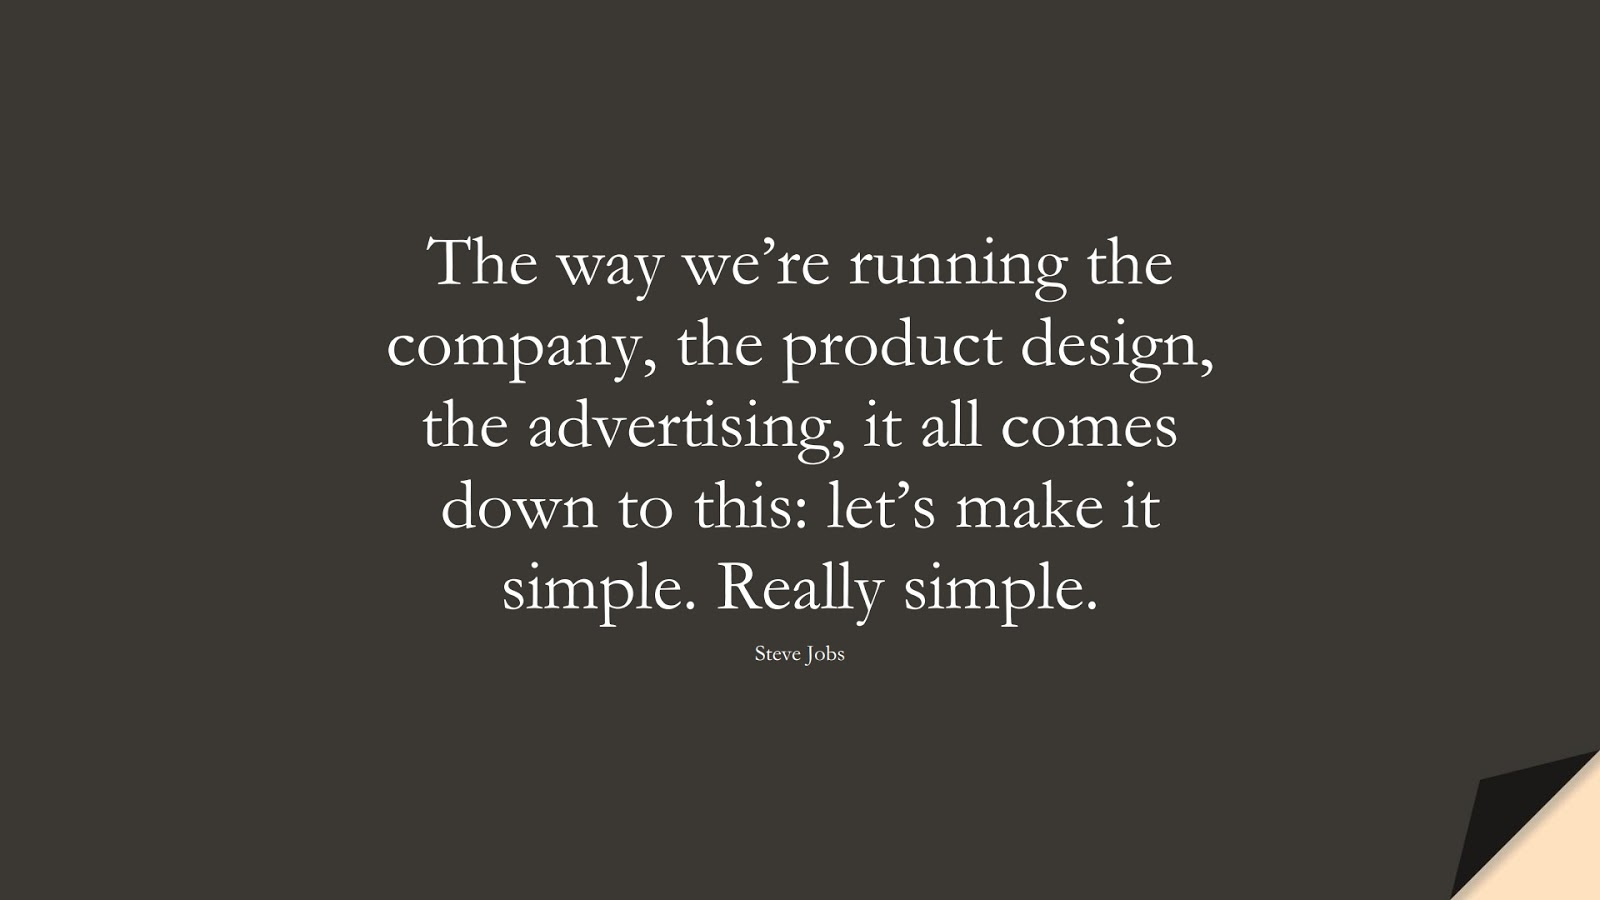 The way we're running the company, the product design, the advertising, it all comes down to this: let's make it simple. Really simple. (Steve Jobs);  #SteveJobsQuotes